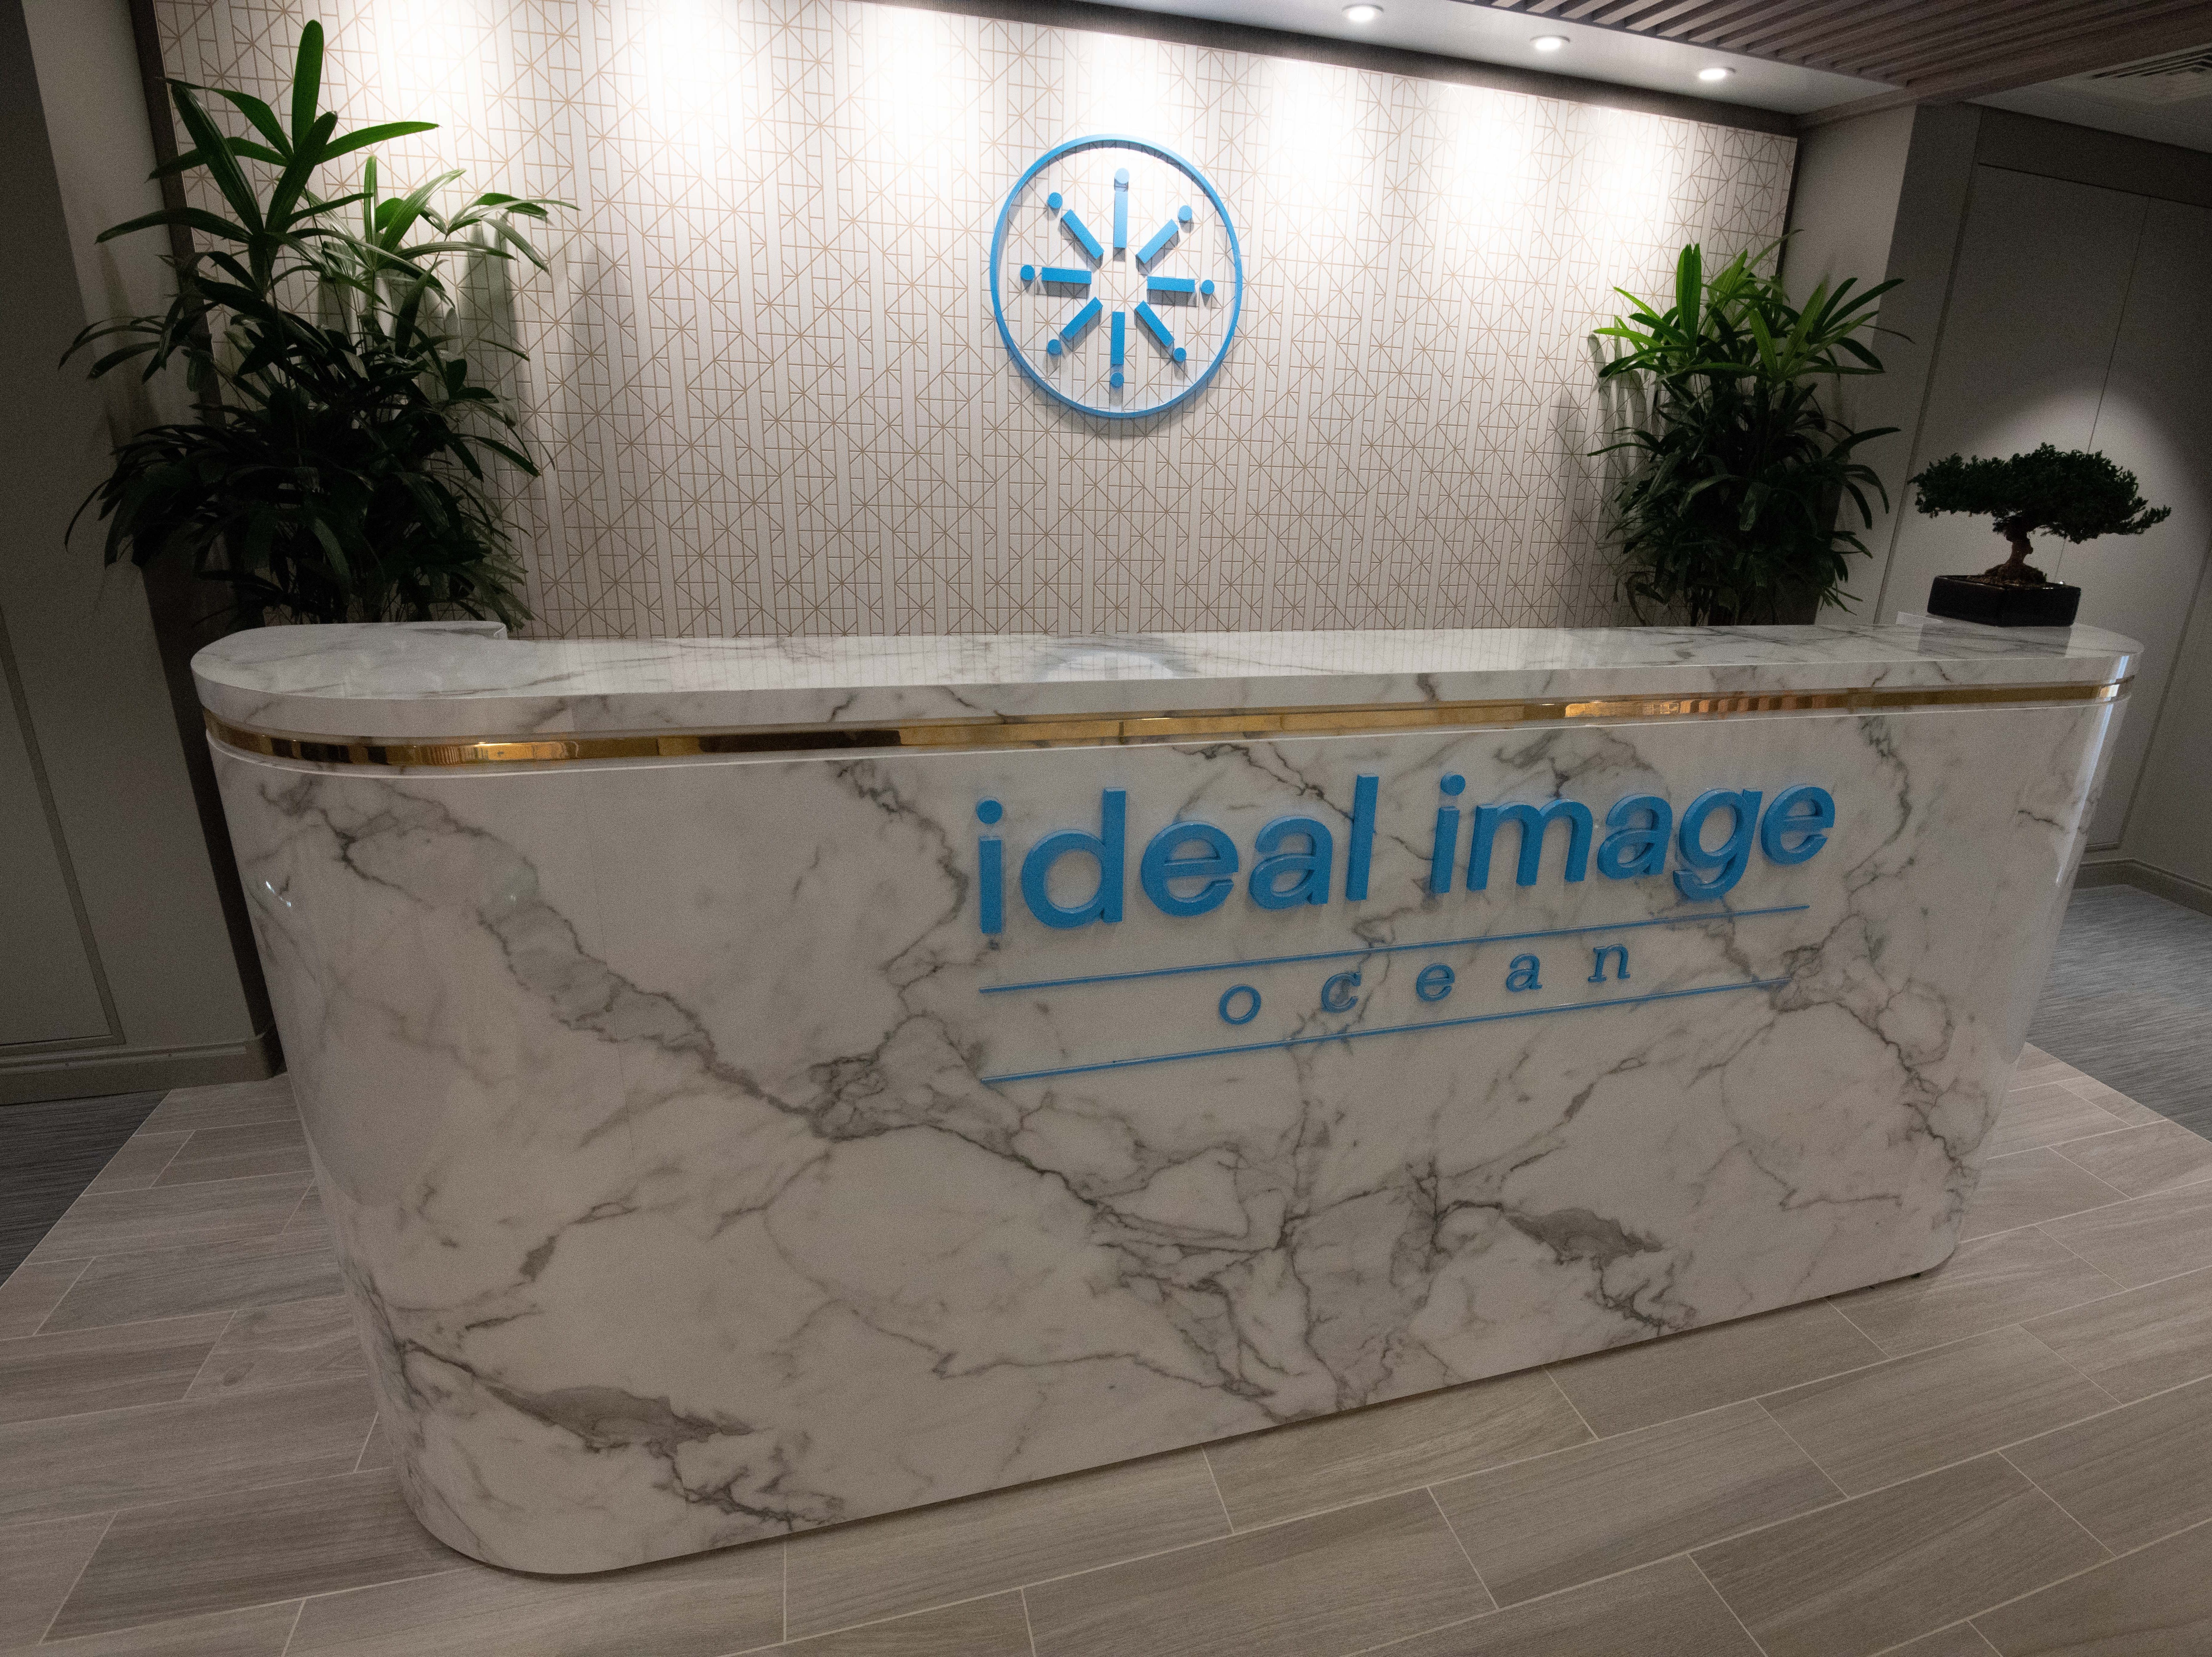 The Spa on Celebrity Edge offers more than 120 treatments, including 15 medical services from Ideal Image Ocean, The Advanced MedSpa. Ideal Image Ocean has a separate entry area.